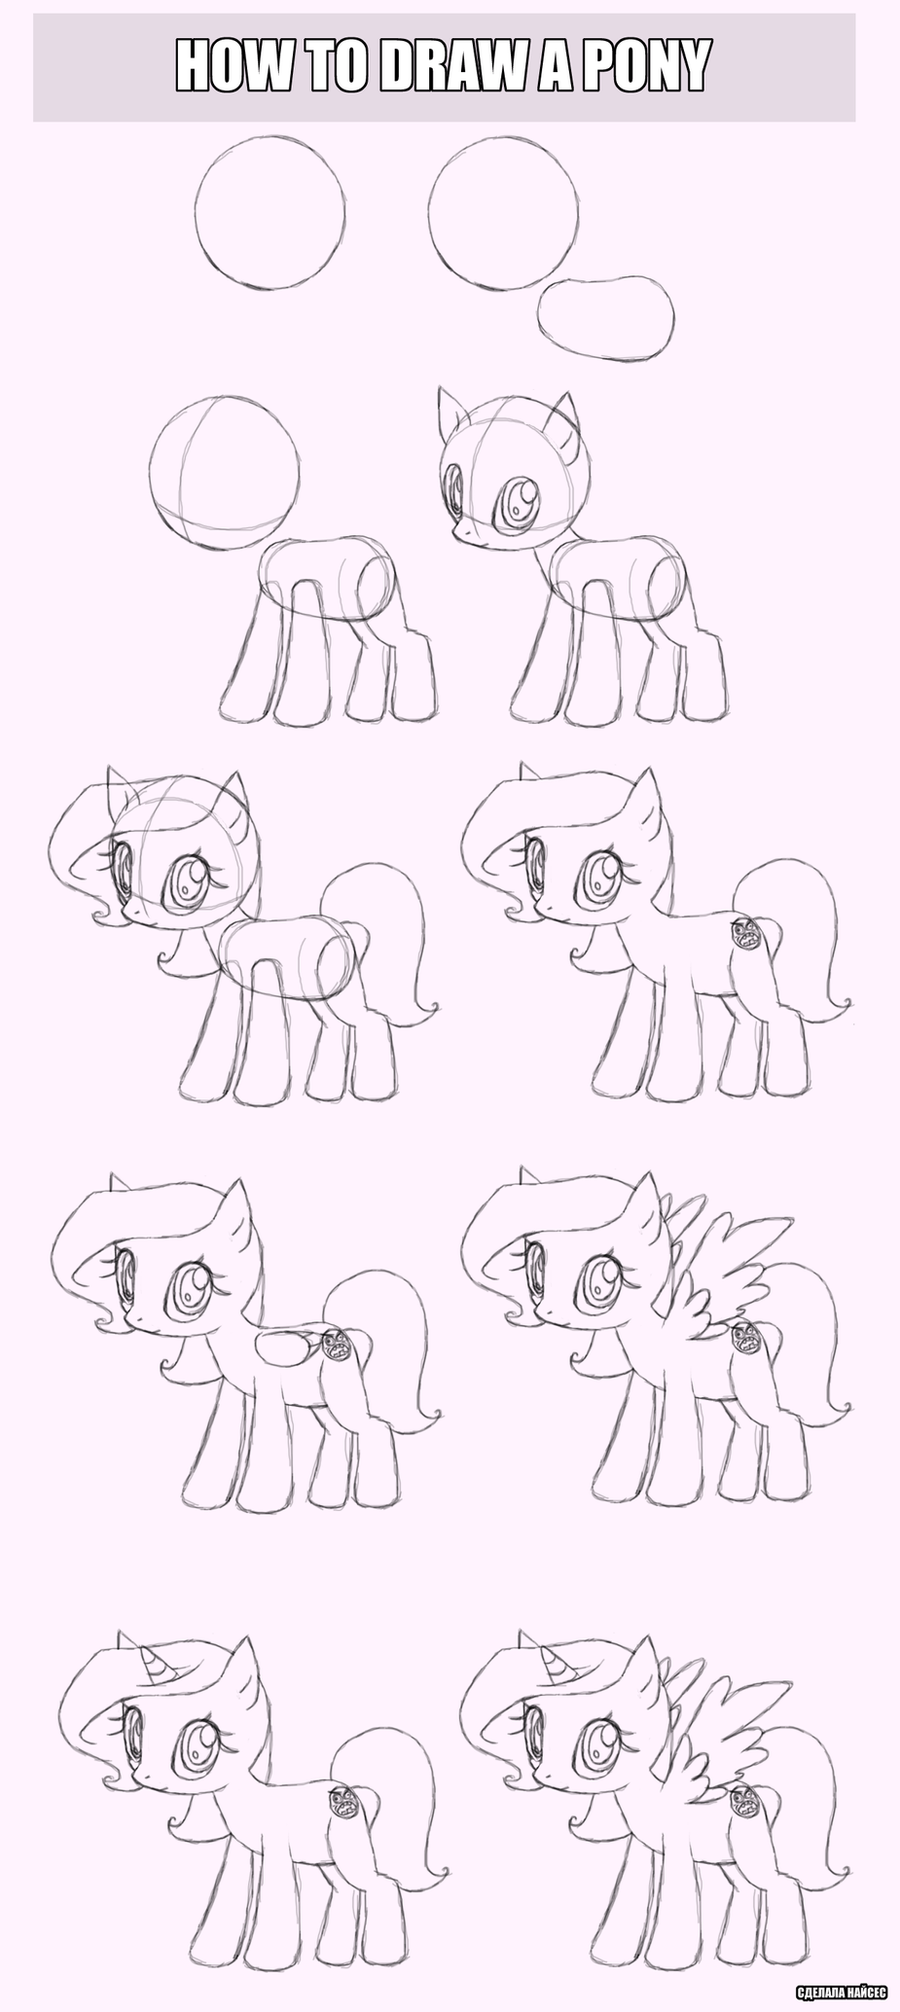 How To Draw A Pony By Nicesthebear